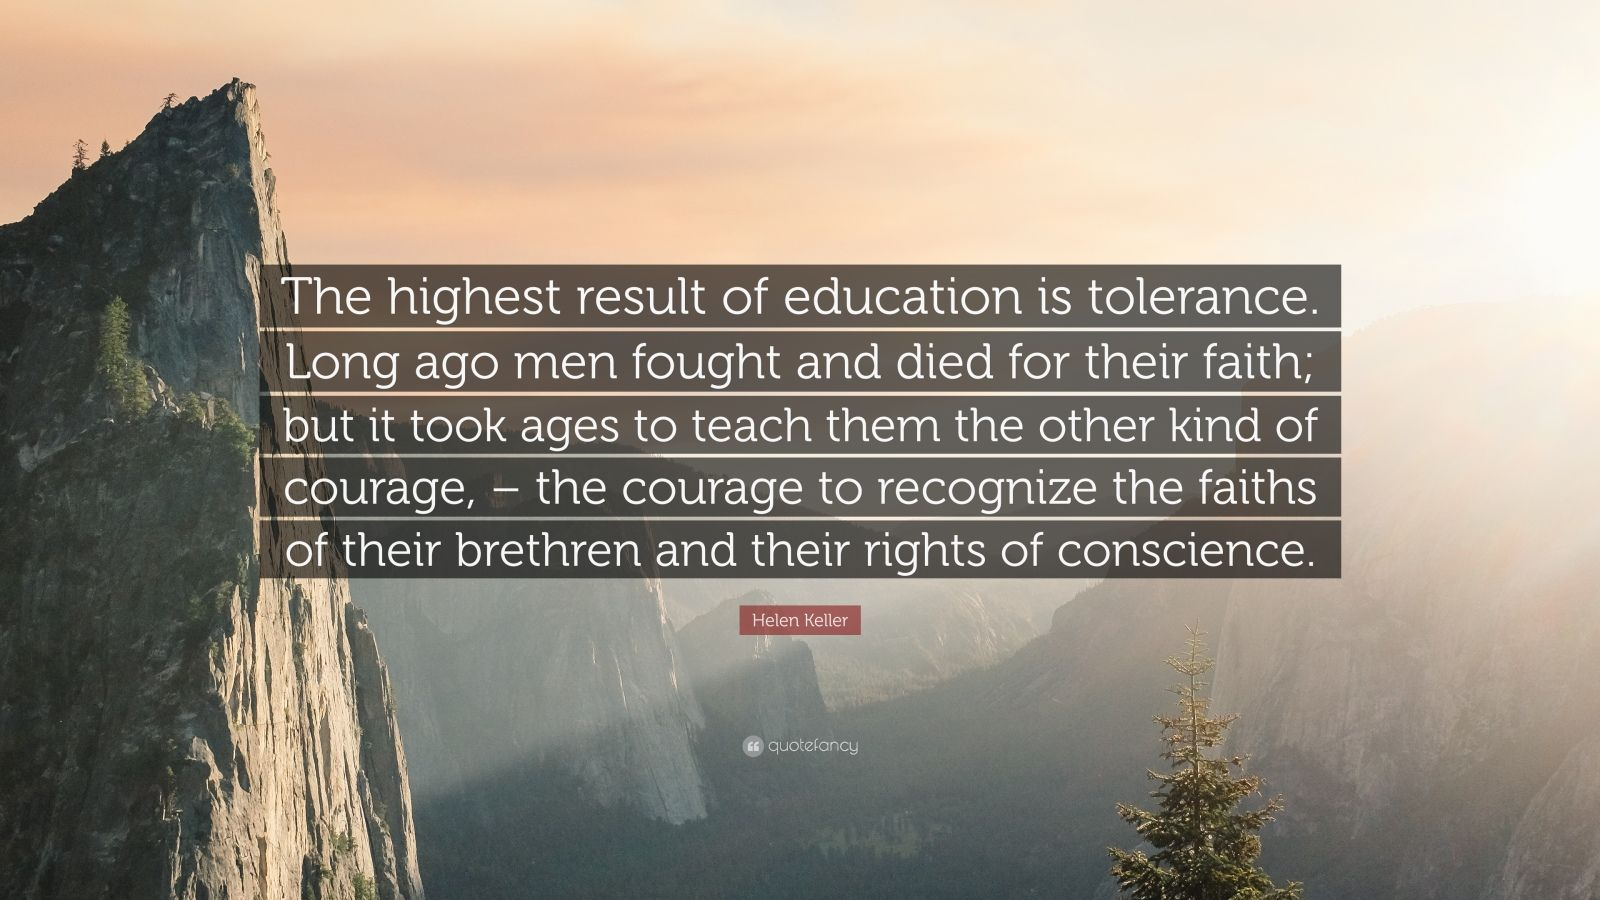 """Helen Keller Quote: """"The highest result of education is tolerance. Long ago men fought and died for their faith; but it took ages to teach them the other kind of courage, – the courage to recognize the faiths of their brethren and their rights of conscience."""""""